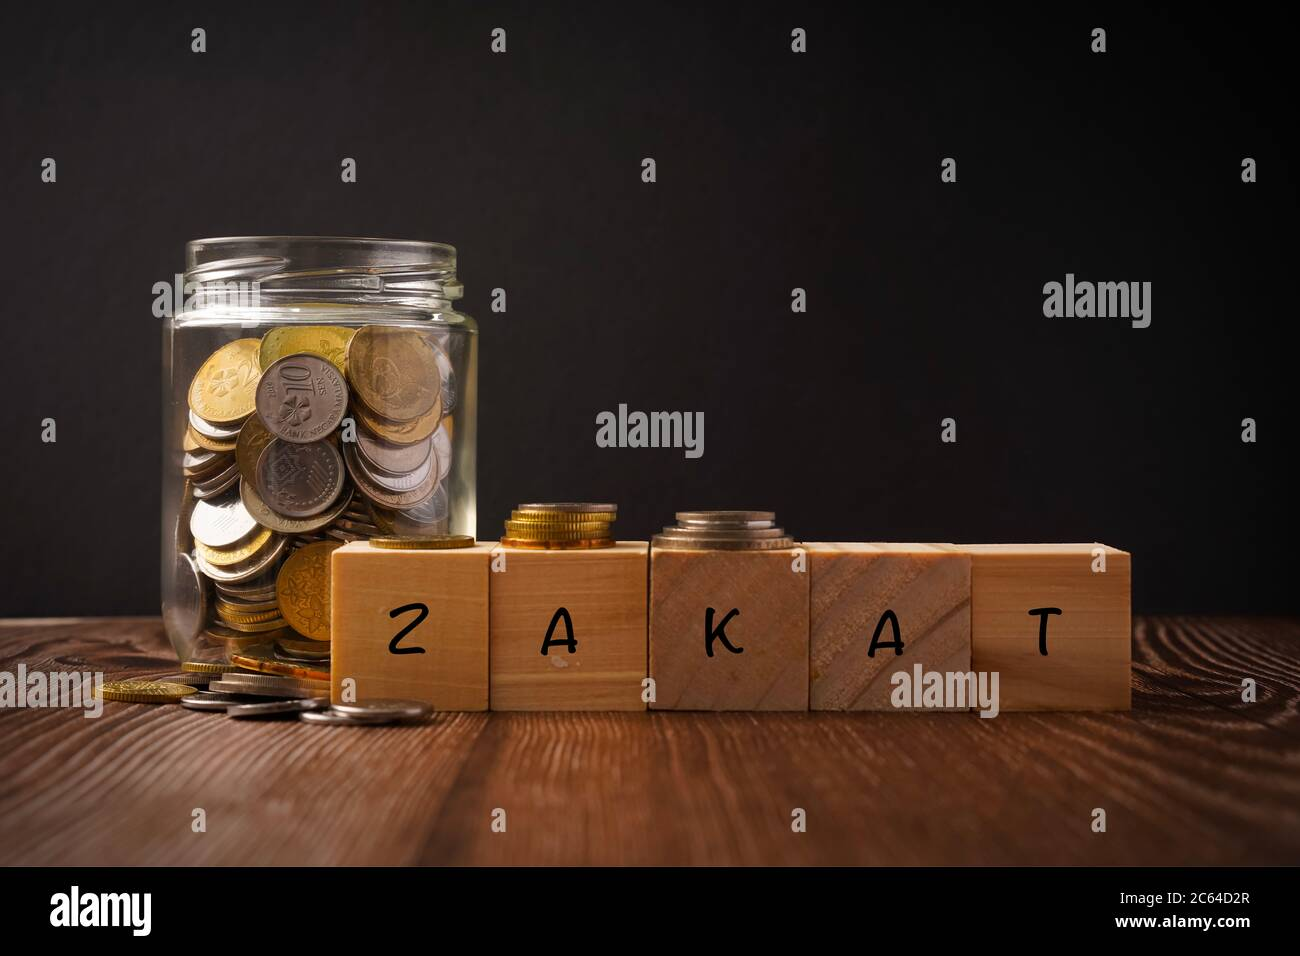 zakat islamic concept zakat wordings wih coins in jar on wooden background stock photo alamy https www alamy com zakat islamic concept zakat wordings wih coins in jar on wooden background image365203743 html